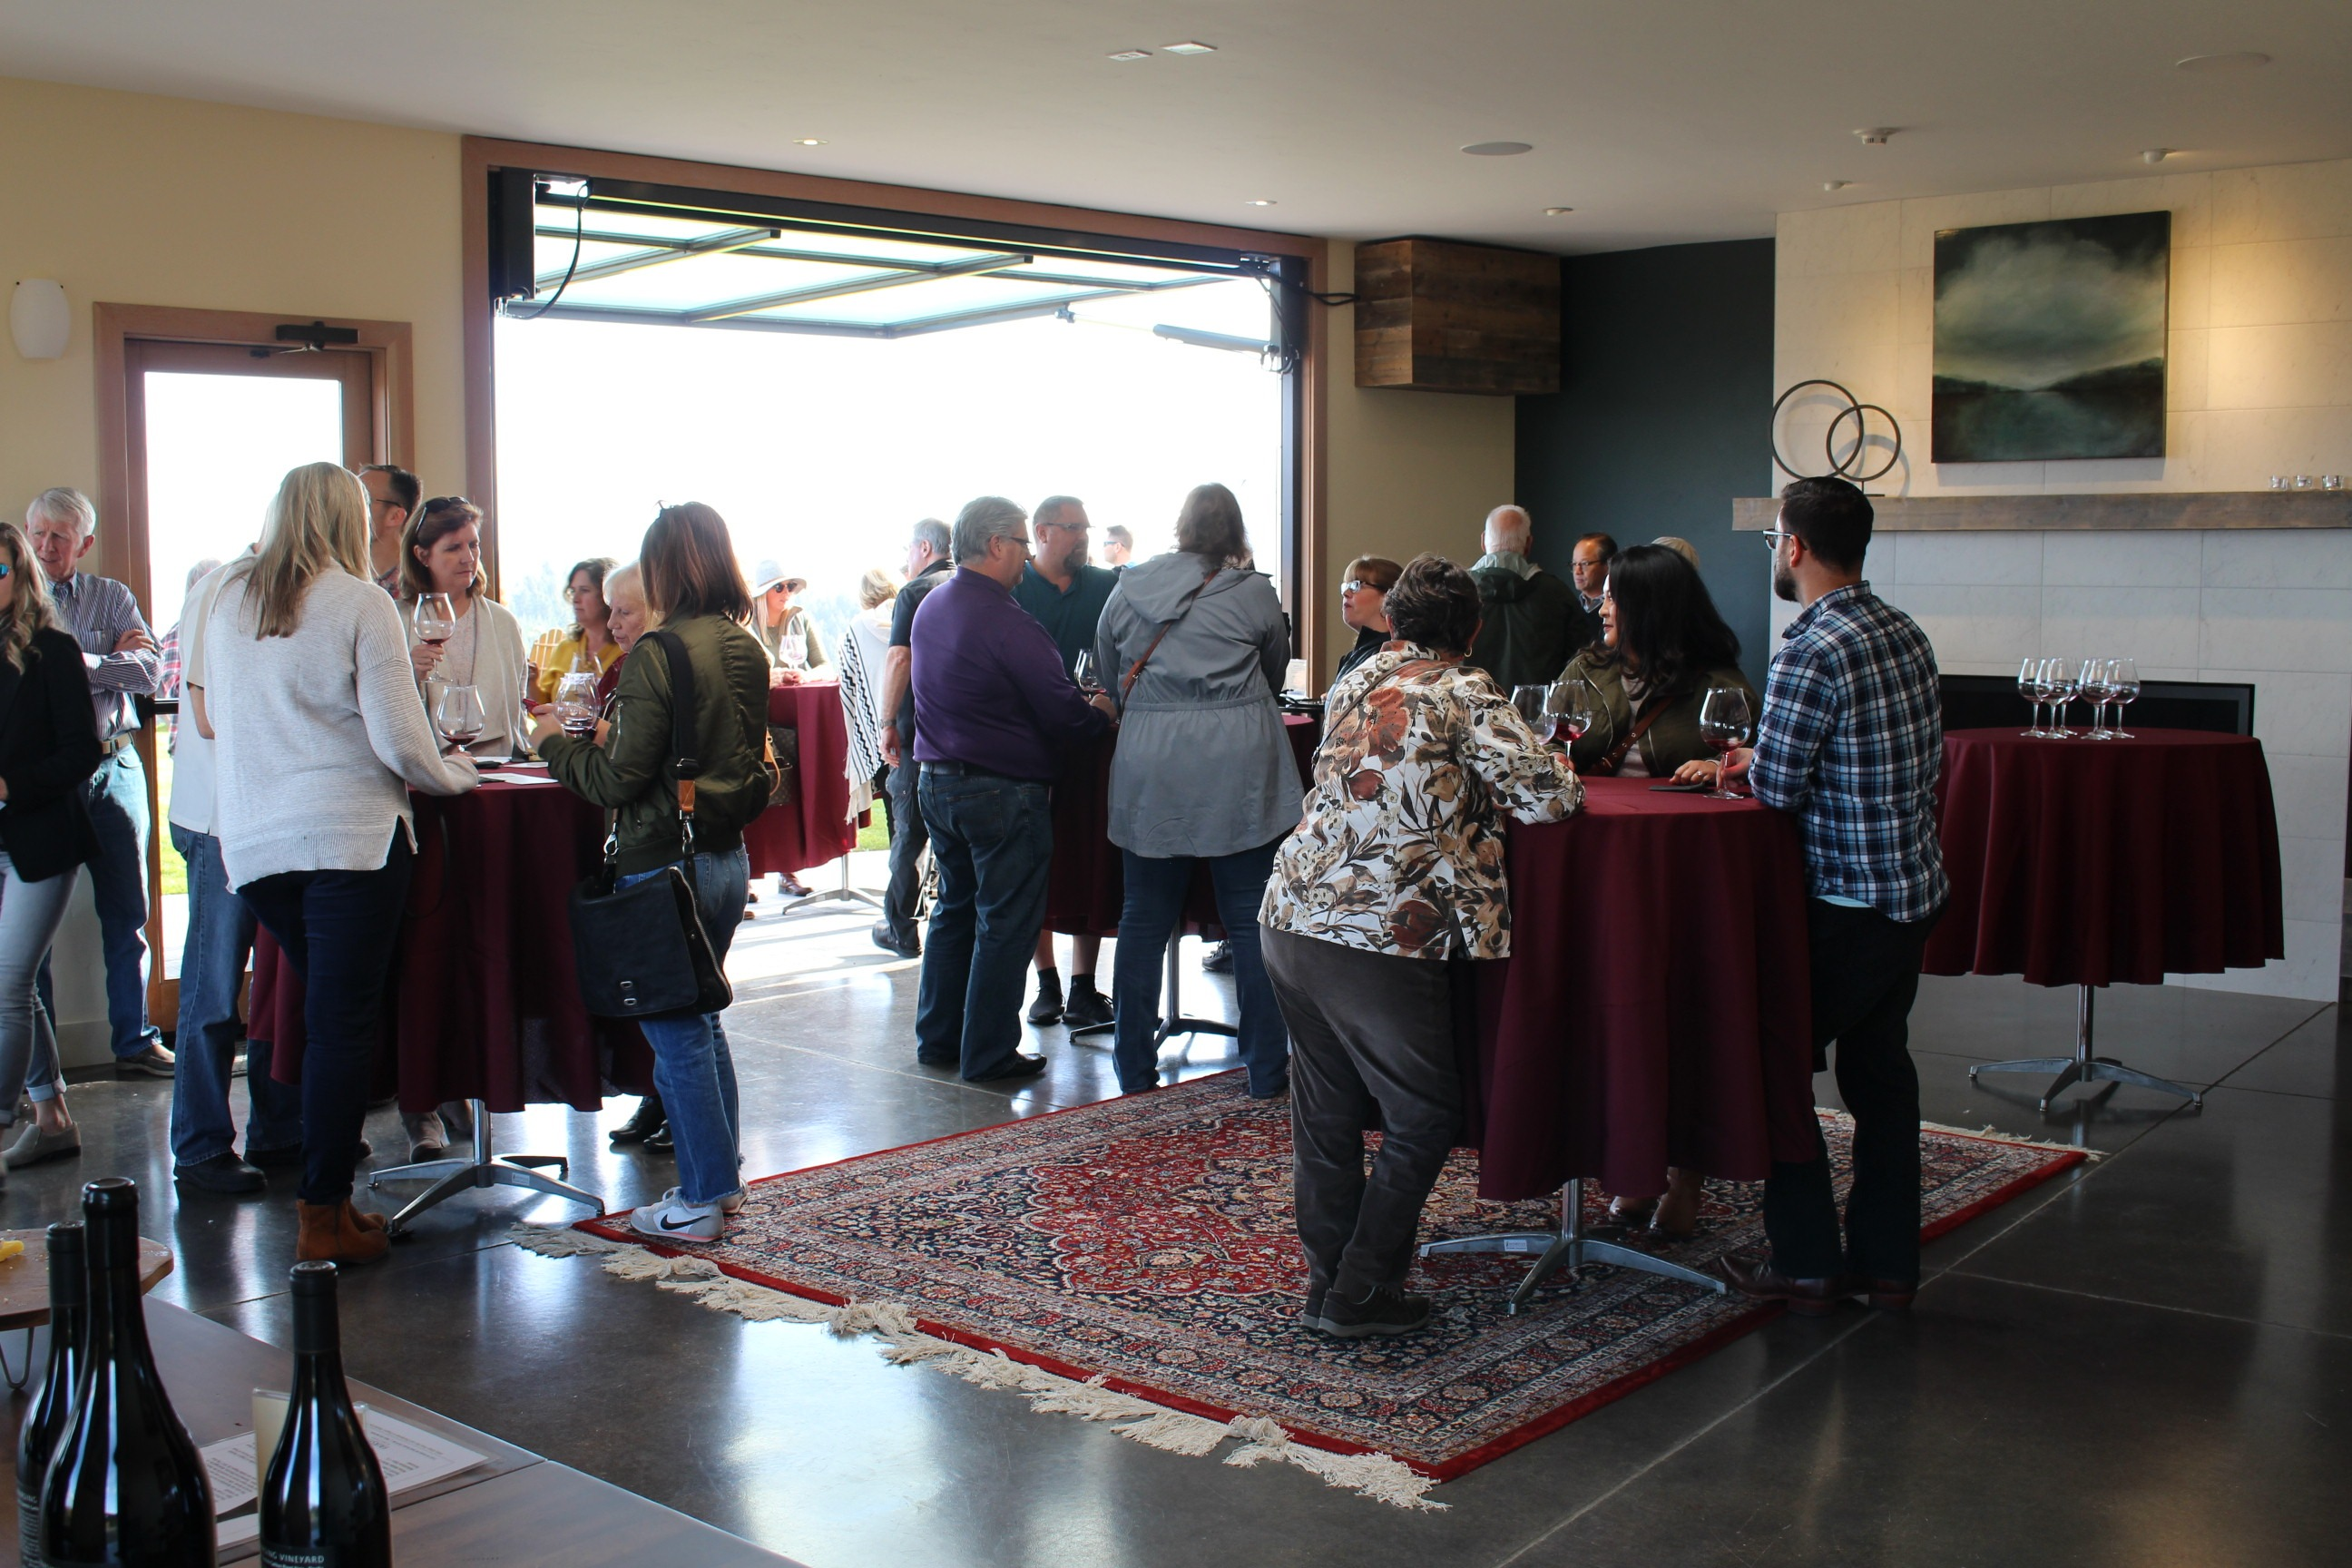 Fairsing Vineyard Wine Club members enjoy the event space during the 2018 fall open house